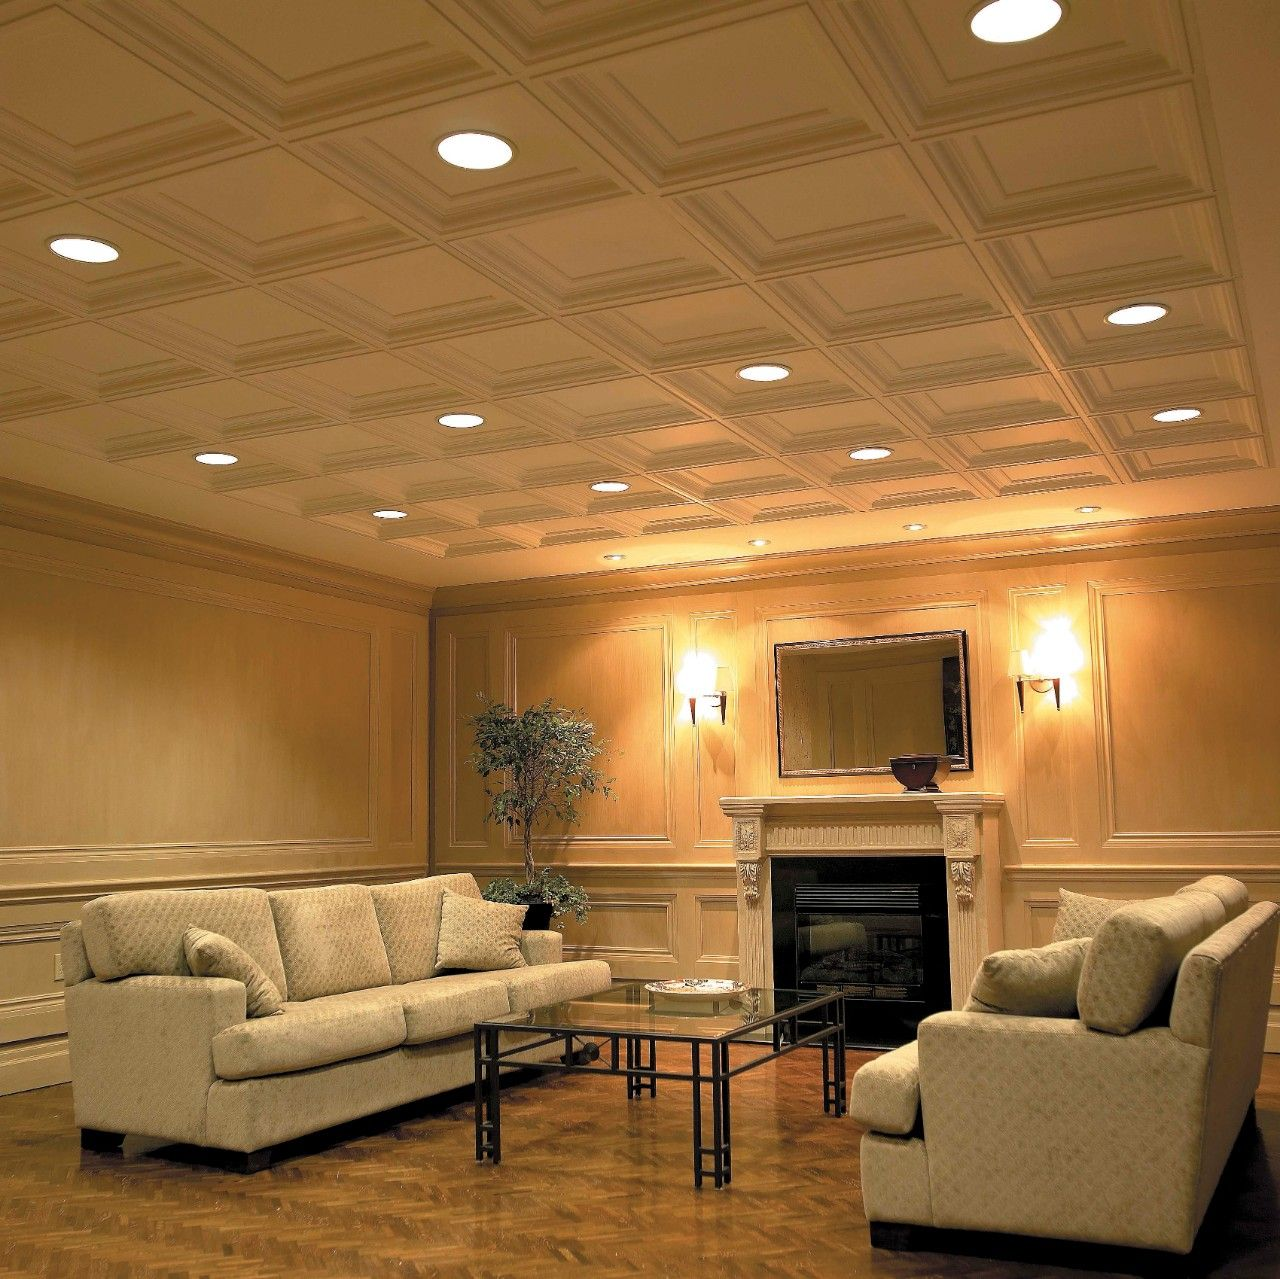 Usg elegance coffered ceiling panels make achieving coffered innovative acoustic ceiling tiles kenmark inc lobby dailygadgetfo Images